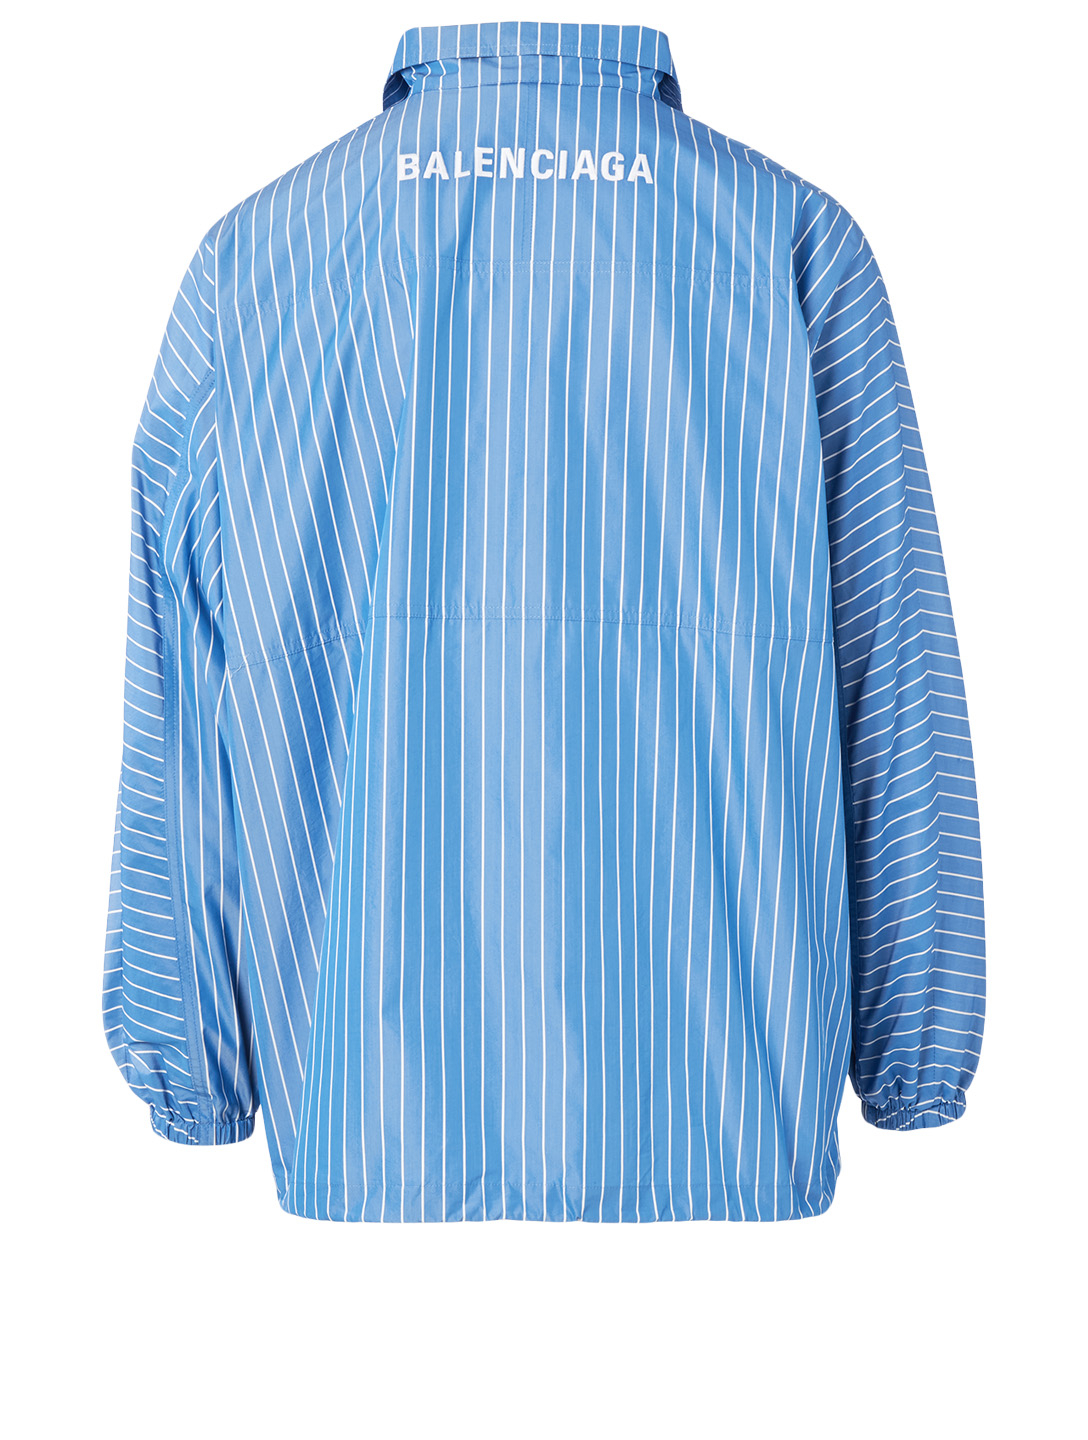 BALENCIAGA Zip Jacket In Striped Print Men's Blue